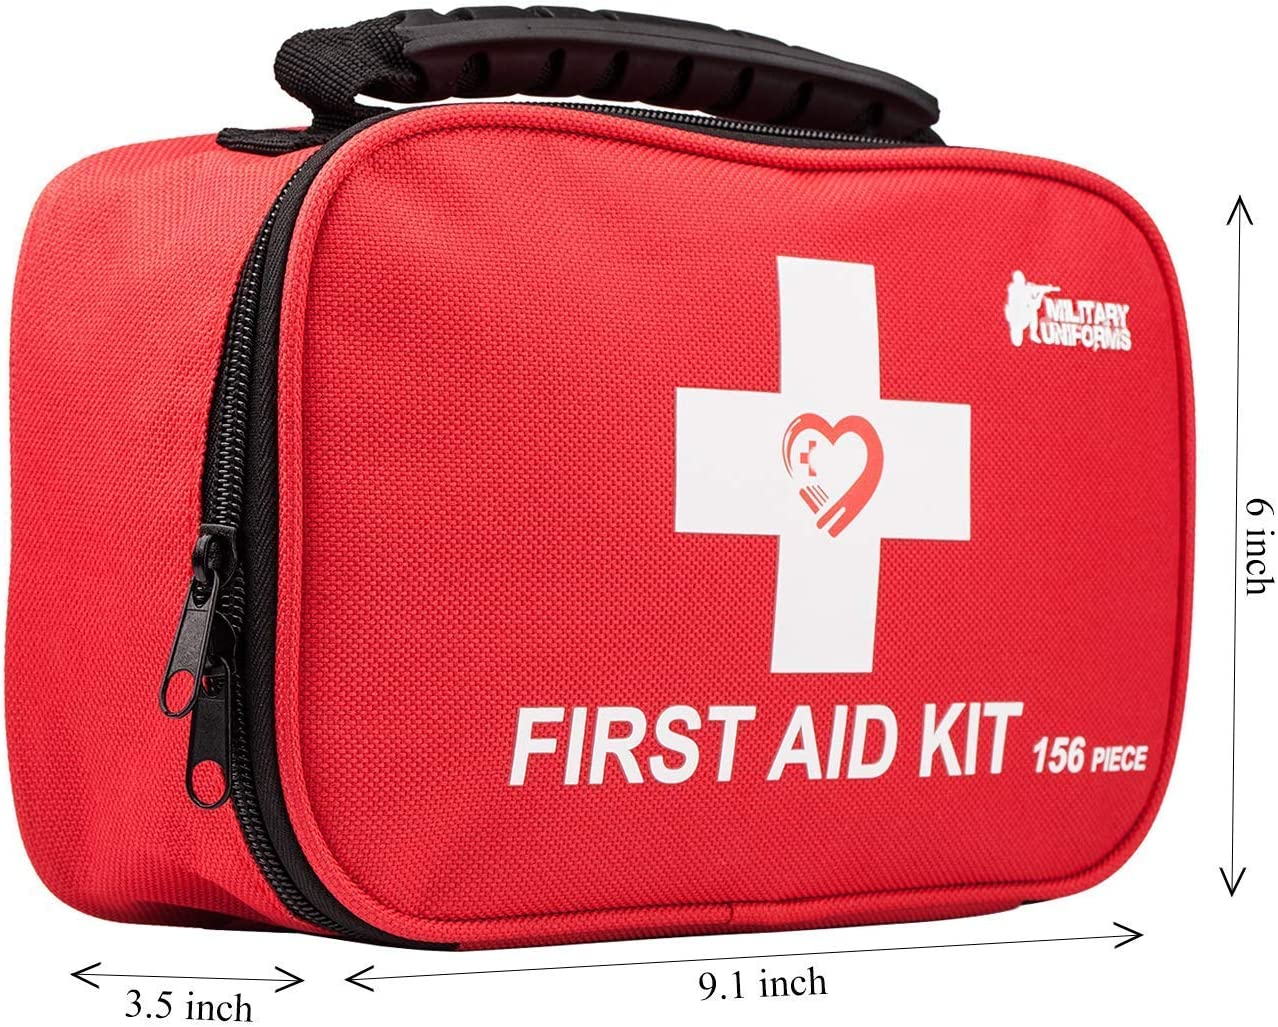 First aid kit, All-Purpose aid kit and Compact Emergency kit First aid for Office, aid Kit Medical for Outdoors, Hiking First aid kit and Camping Emergency kit (Red) : Sports & Outdoors